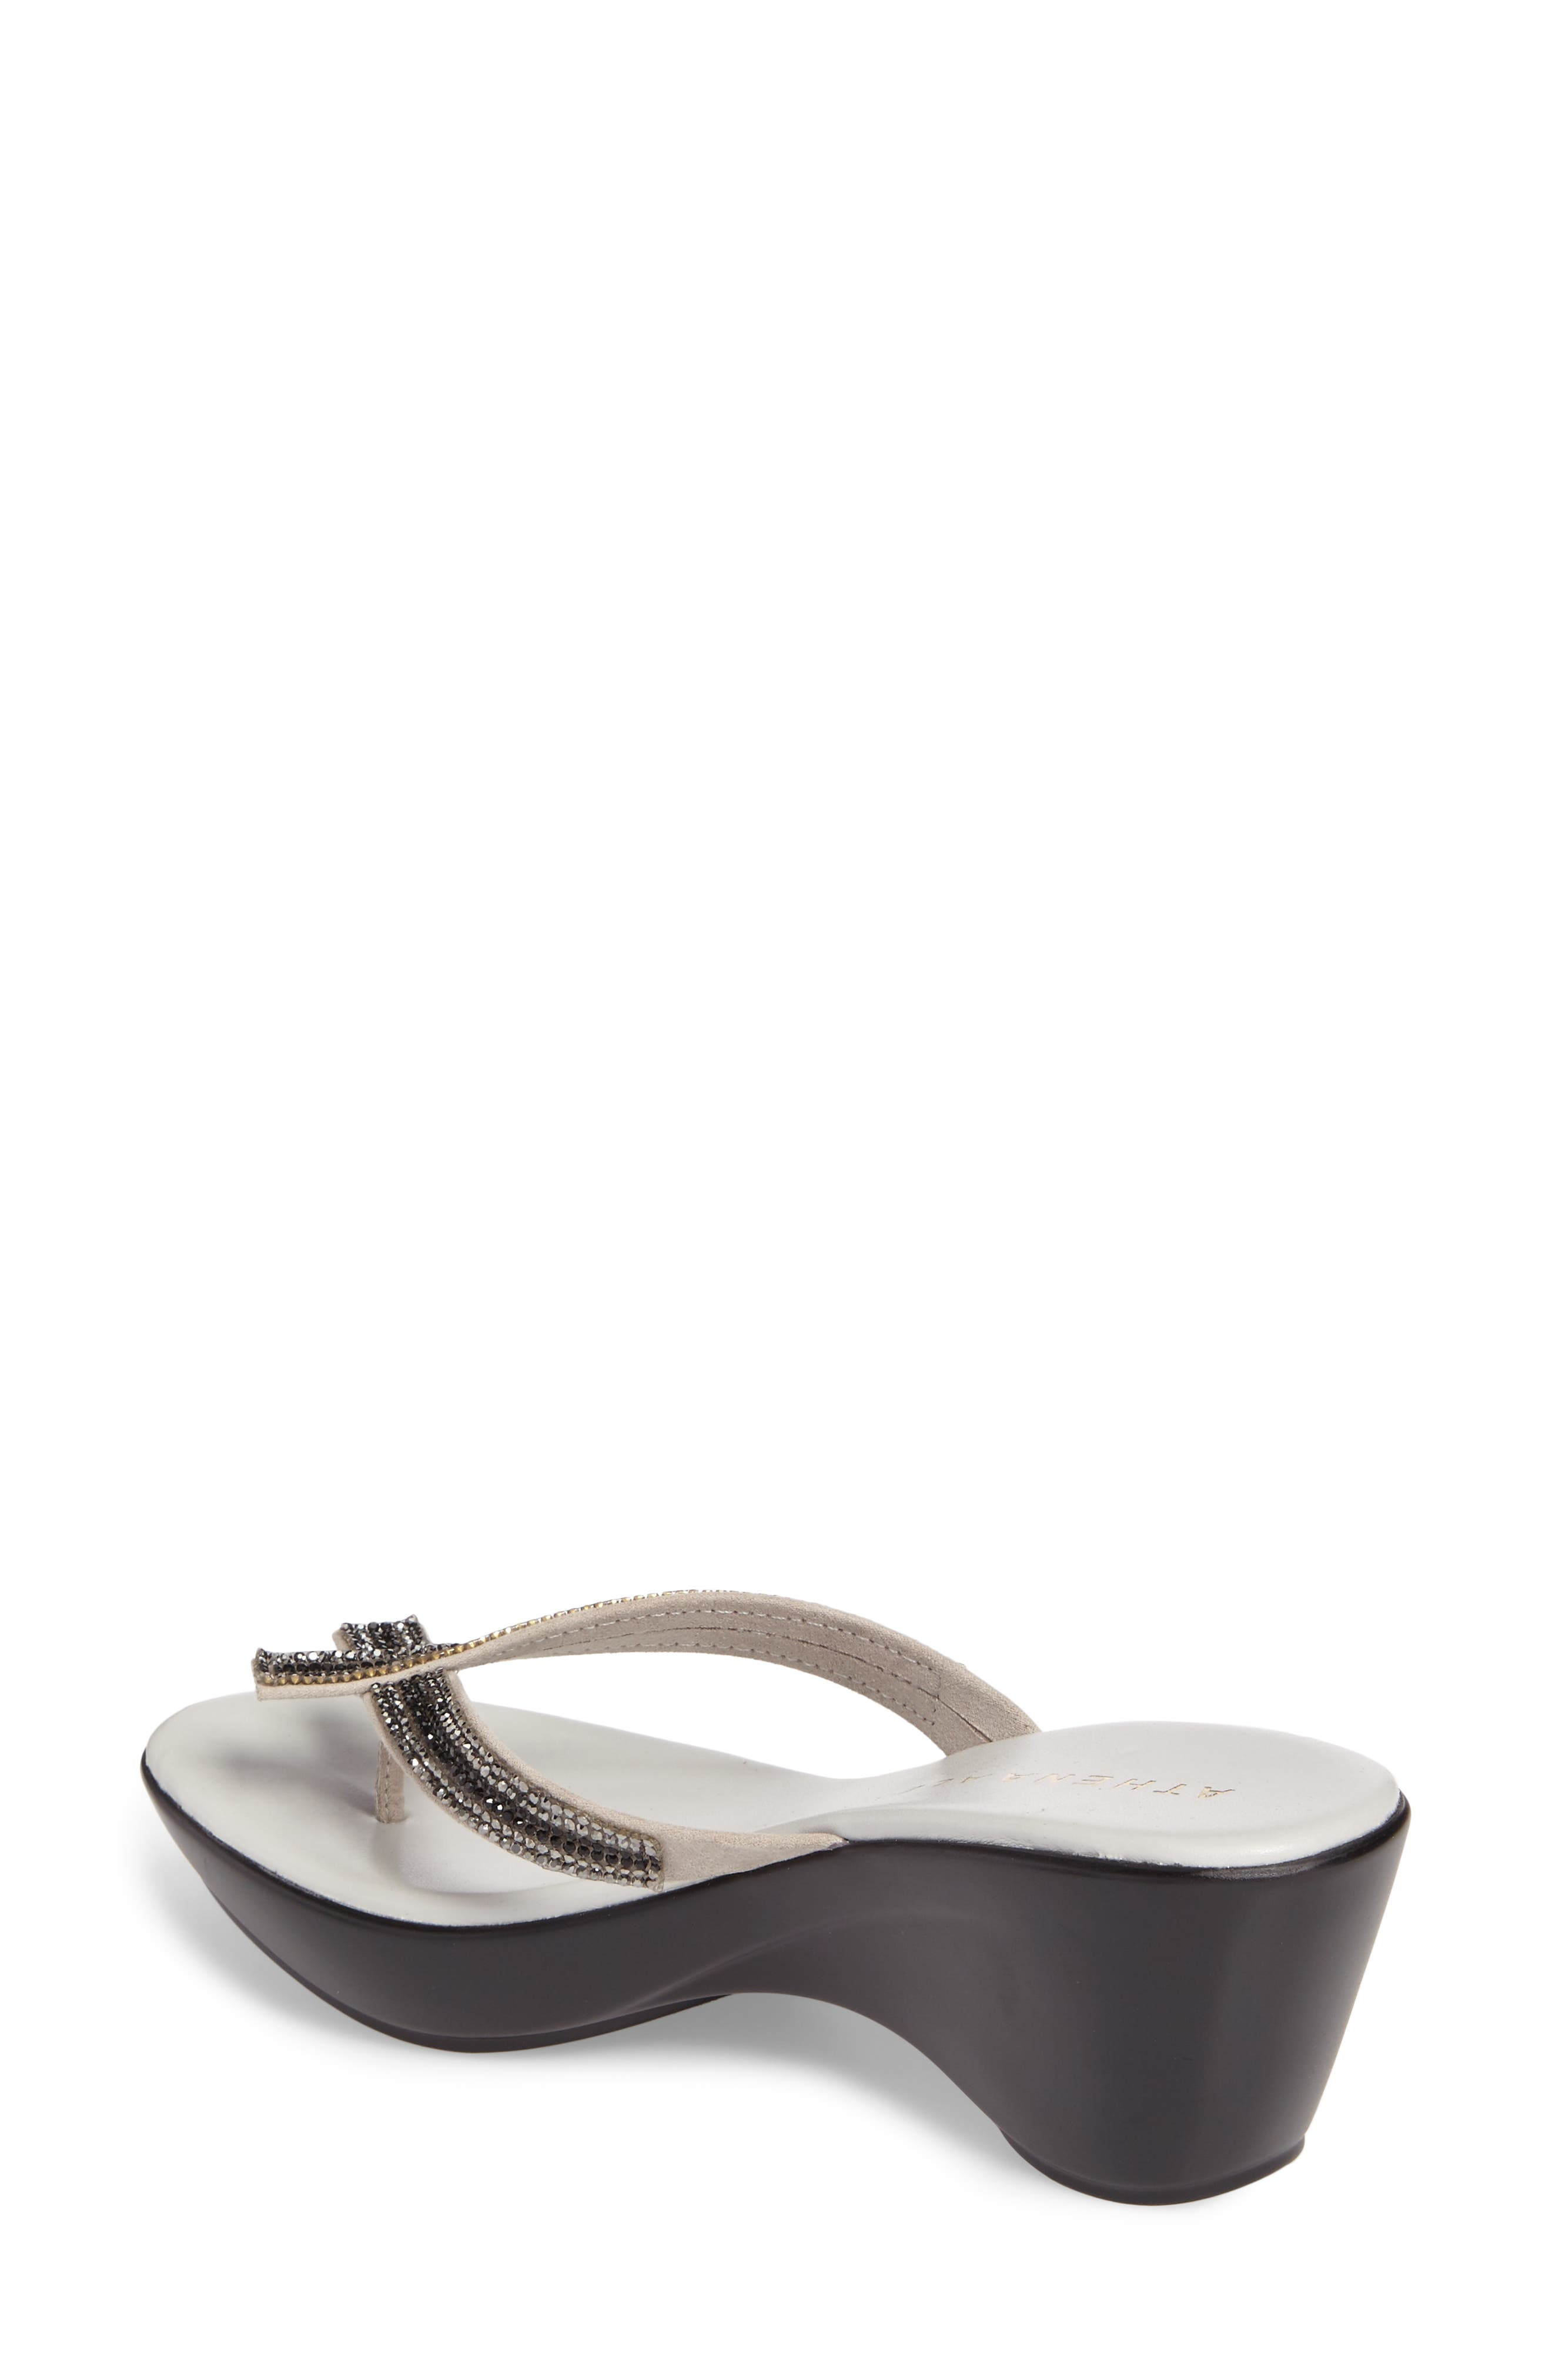 Sienna Wedge Sandal,                             Alternate thumbnail 2, color,                             Grey Synthetic